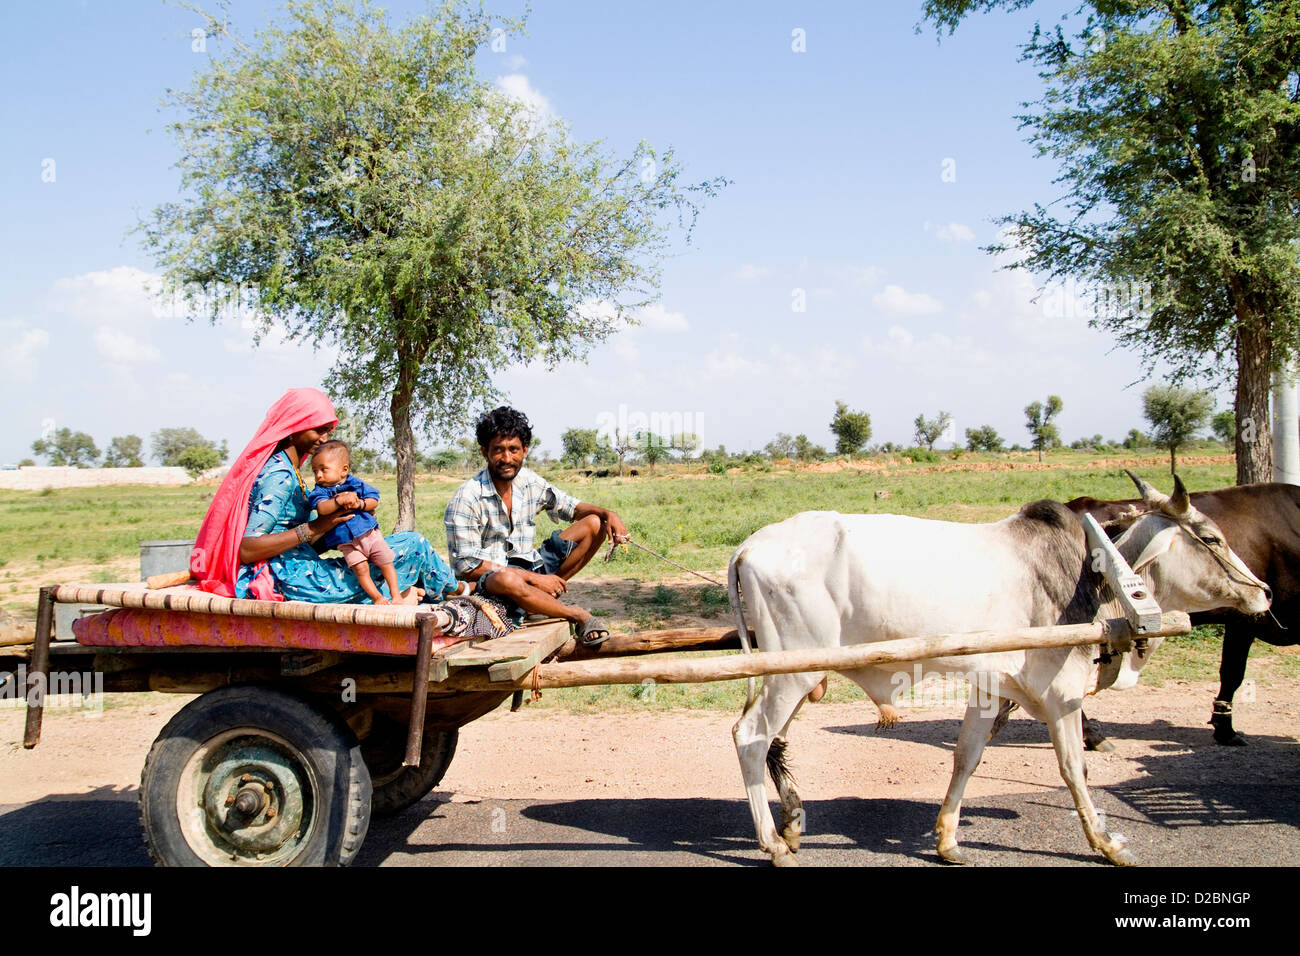 Gypsy Family Going By With Cow Driven Cart To Look For Land At Great Indian Thar Desert In Jodhpur Rajasthan India - Stock Image